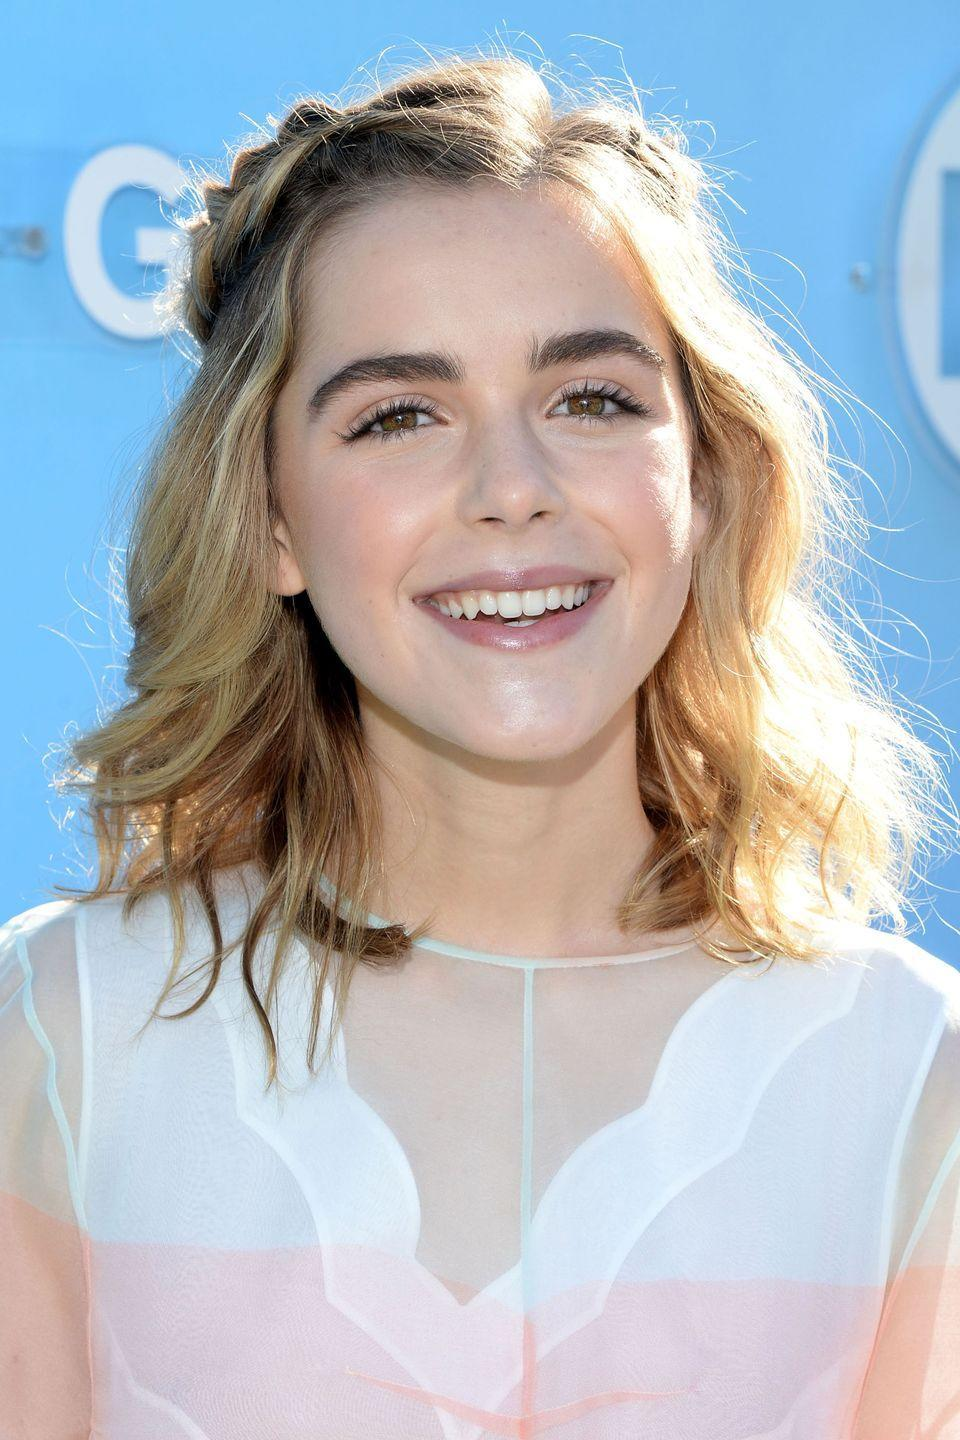 <p>Because sometimes you don't have the energy to fully commit. We get it. Braid two pieces of hair on both sides of her part and secure them together. Easy, breezy, and oh so sweet (just like <em>Chilling Adventures of Sabrina</em>'s <strong>Kiernan Shipka</strong>!).</p>